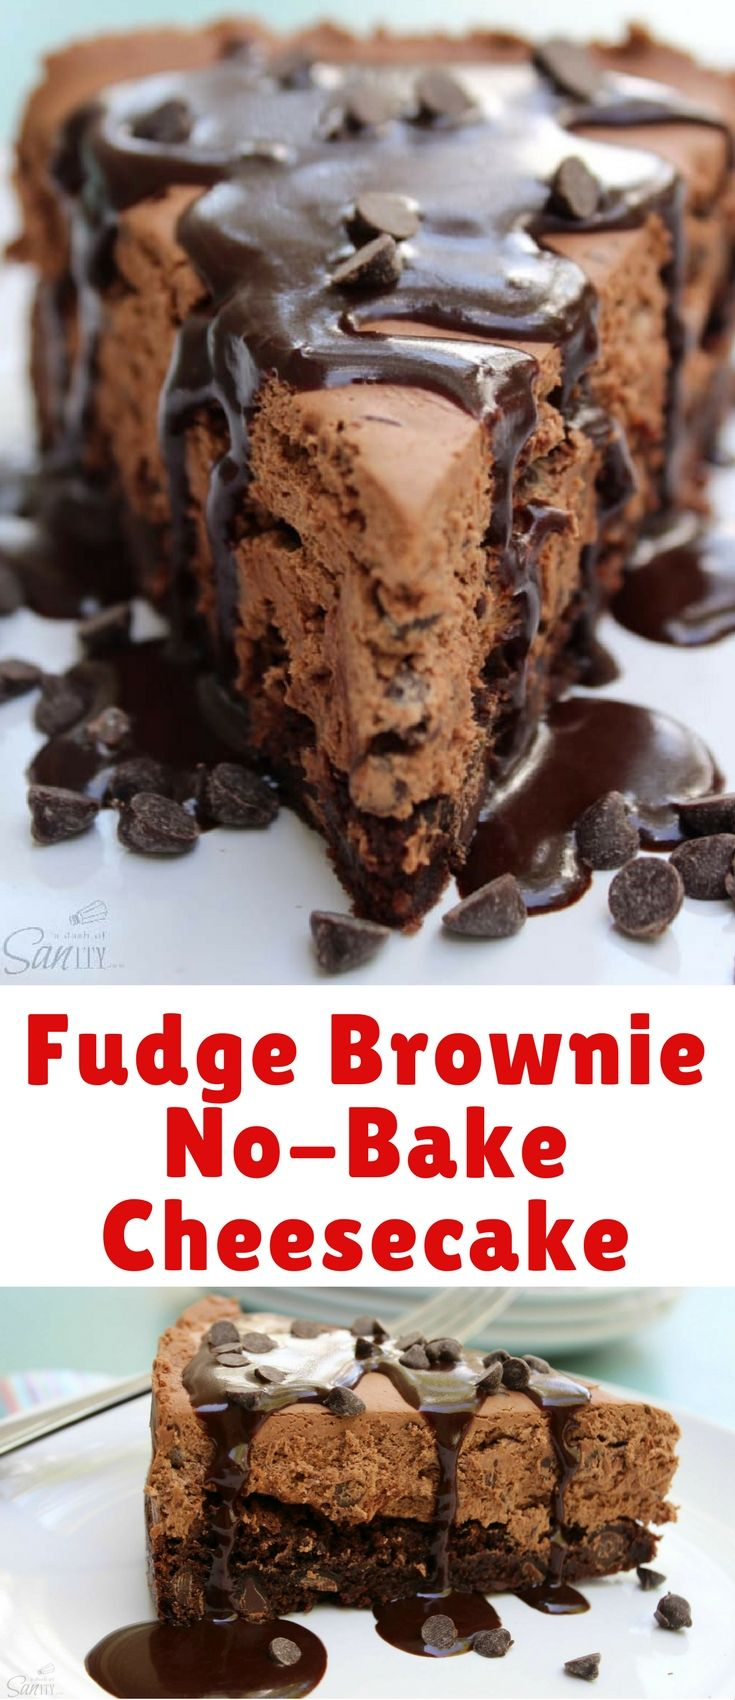 This Fudge Brownie No-Bake Cheesecake is a rich chocolatey lover's dream. Made with double chocolate brownie, chocolate-chocolate chip no-bake cheesecake and a homemade fudge, need I say more?